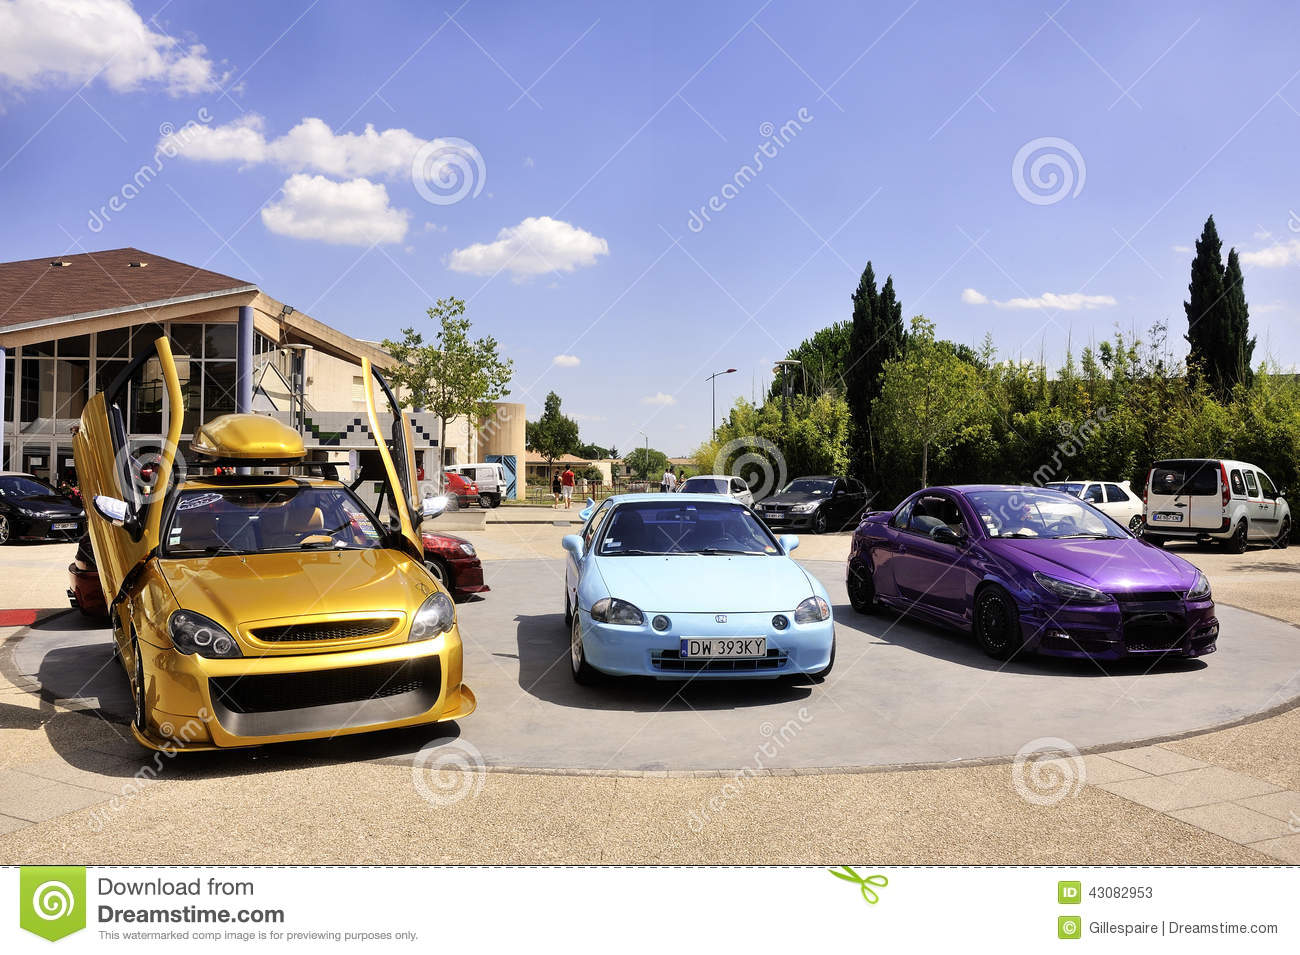 integrated logistics for dep gard Overview: guard automotives manufacturing (gard) is one of the original equipment manufacturing (oem) for us automakers basically producing variety of plastic.